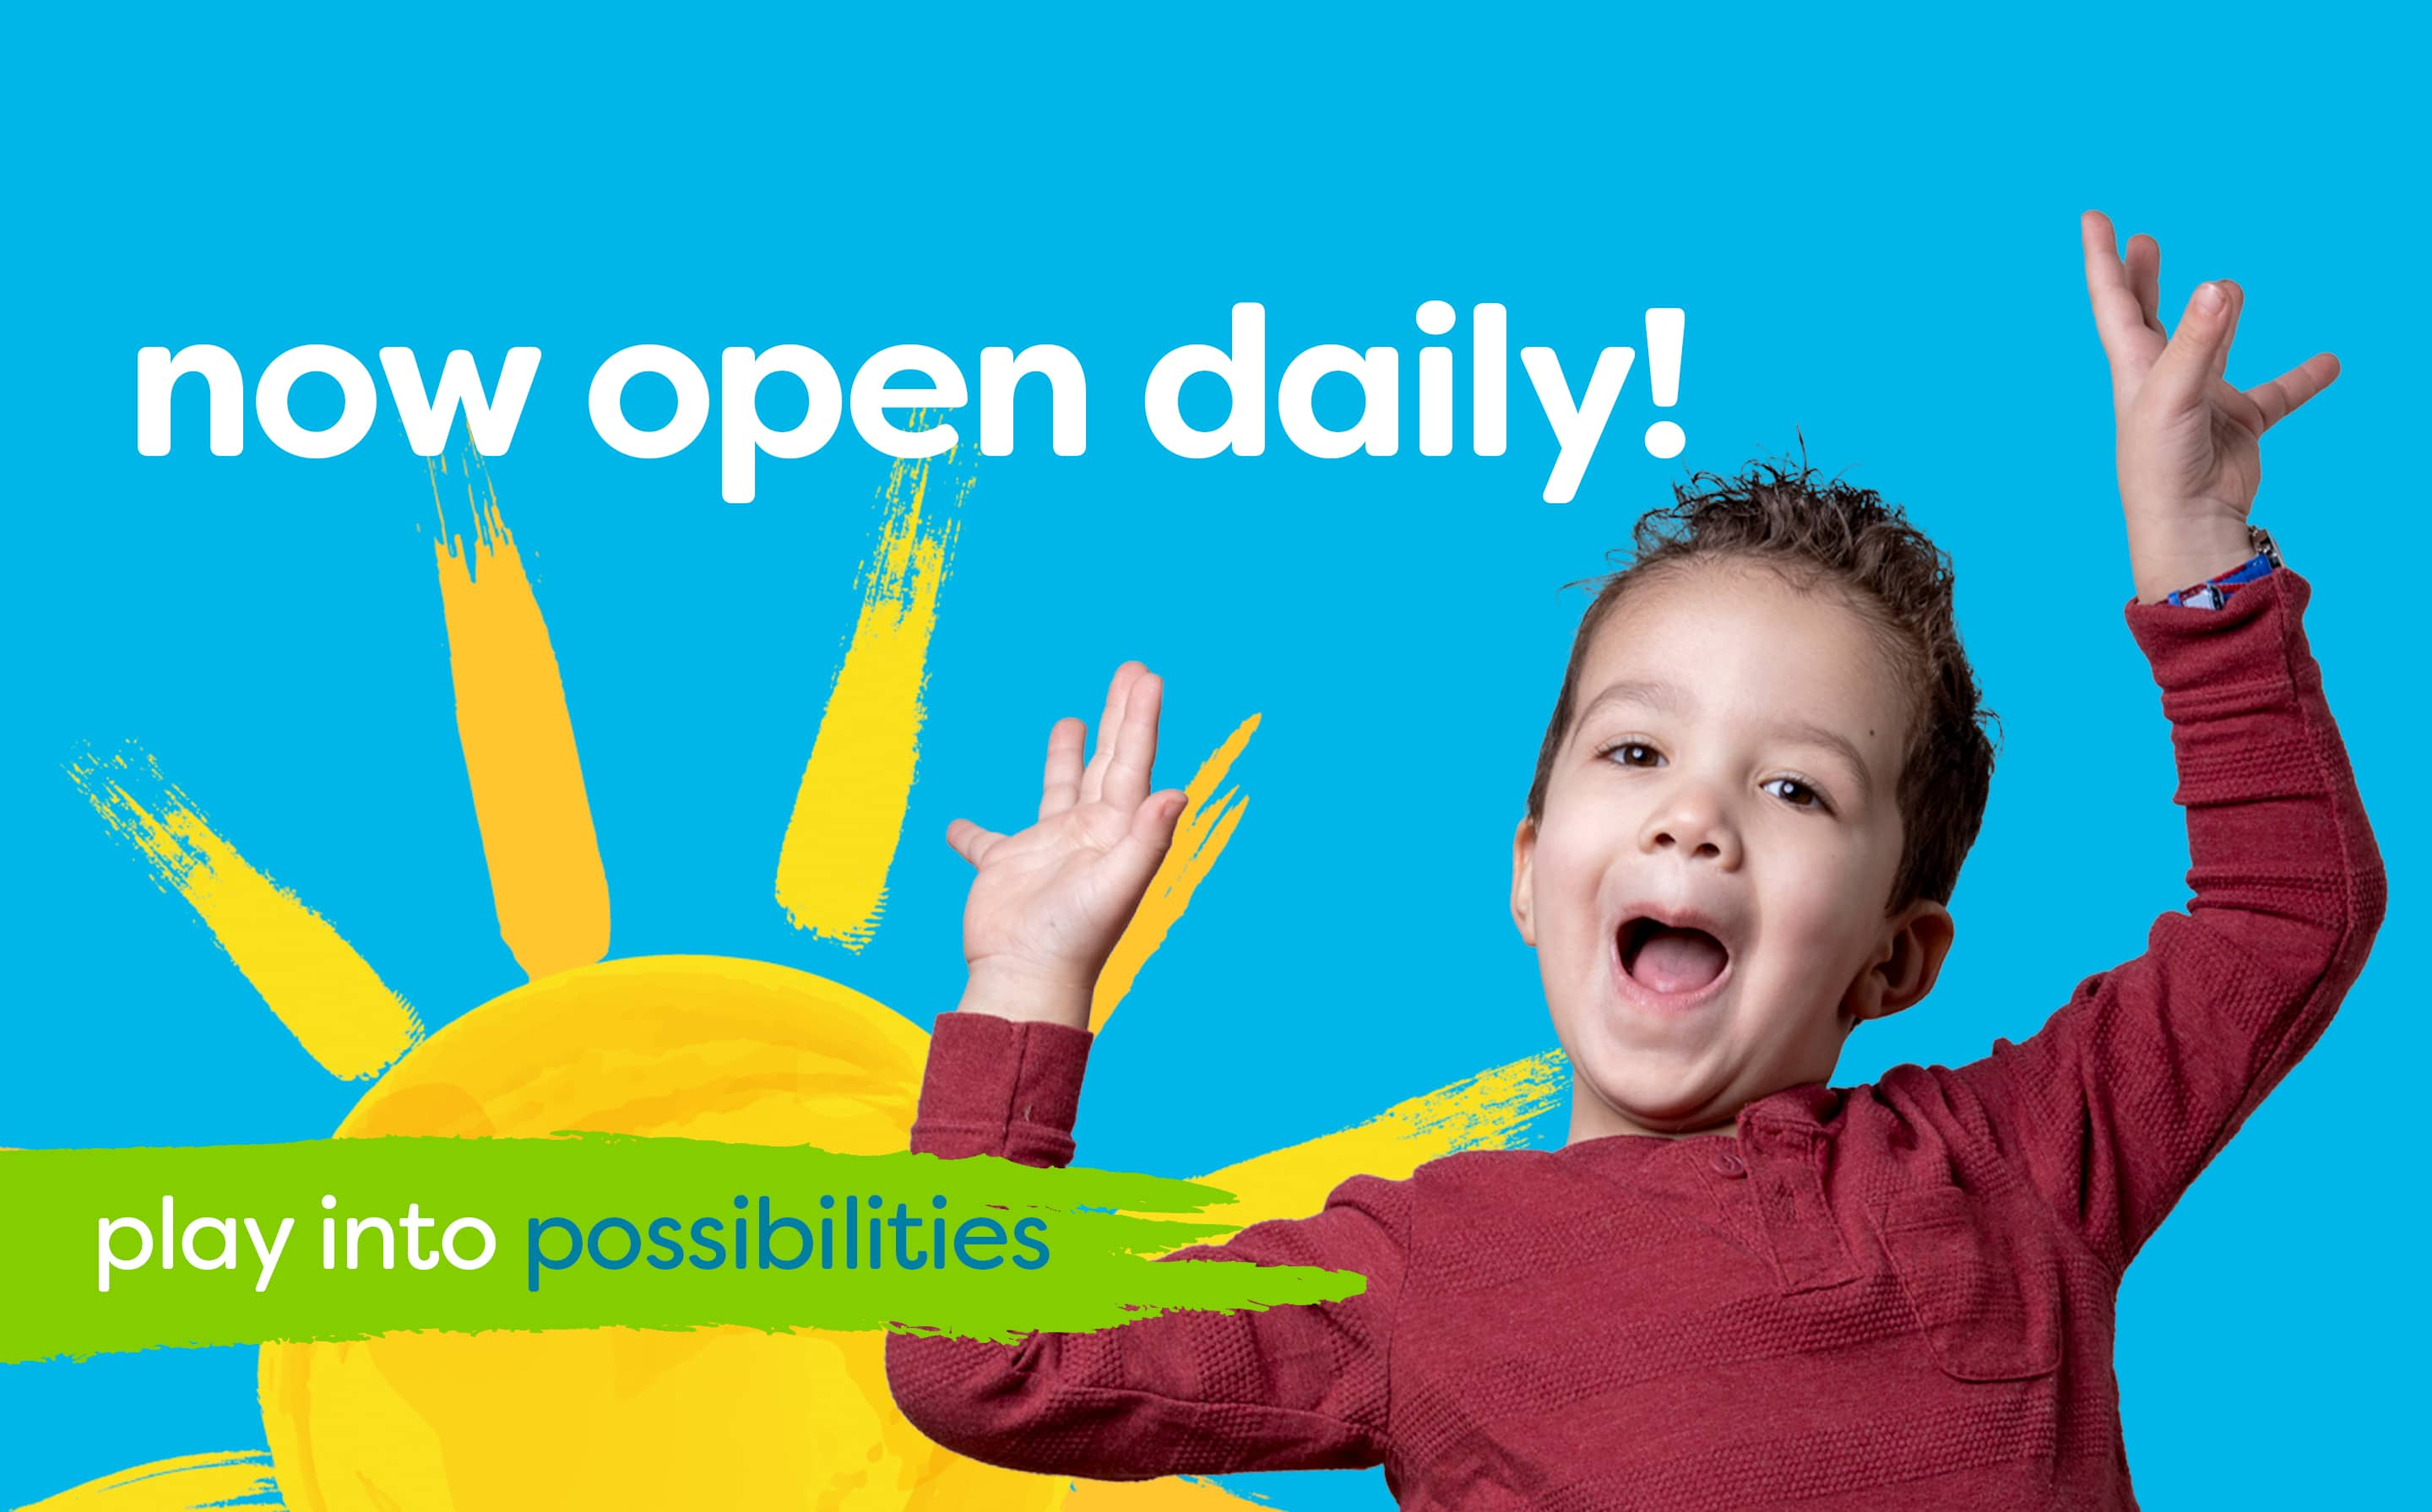 play into possibilities - now open daily